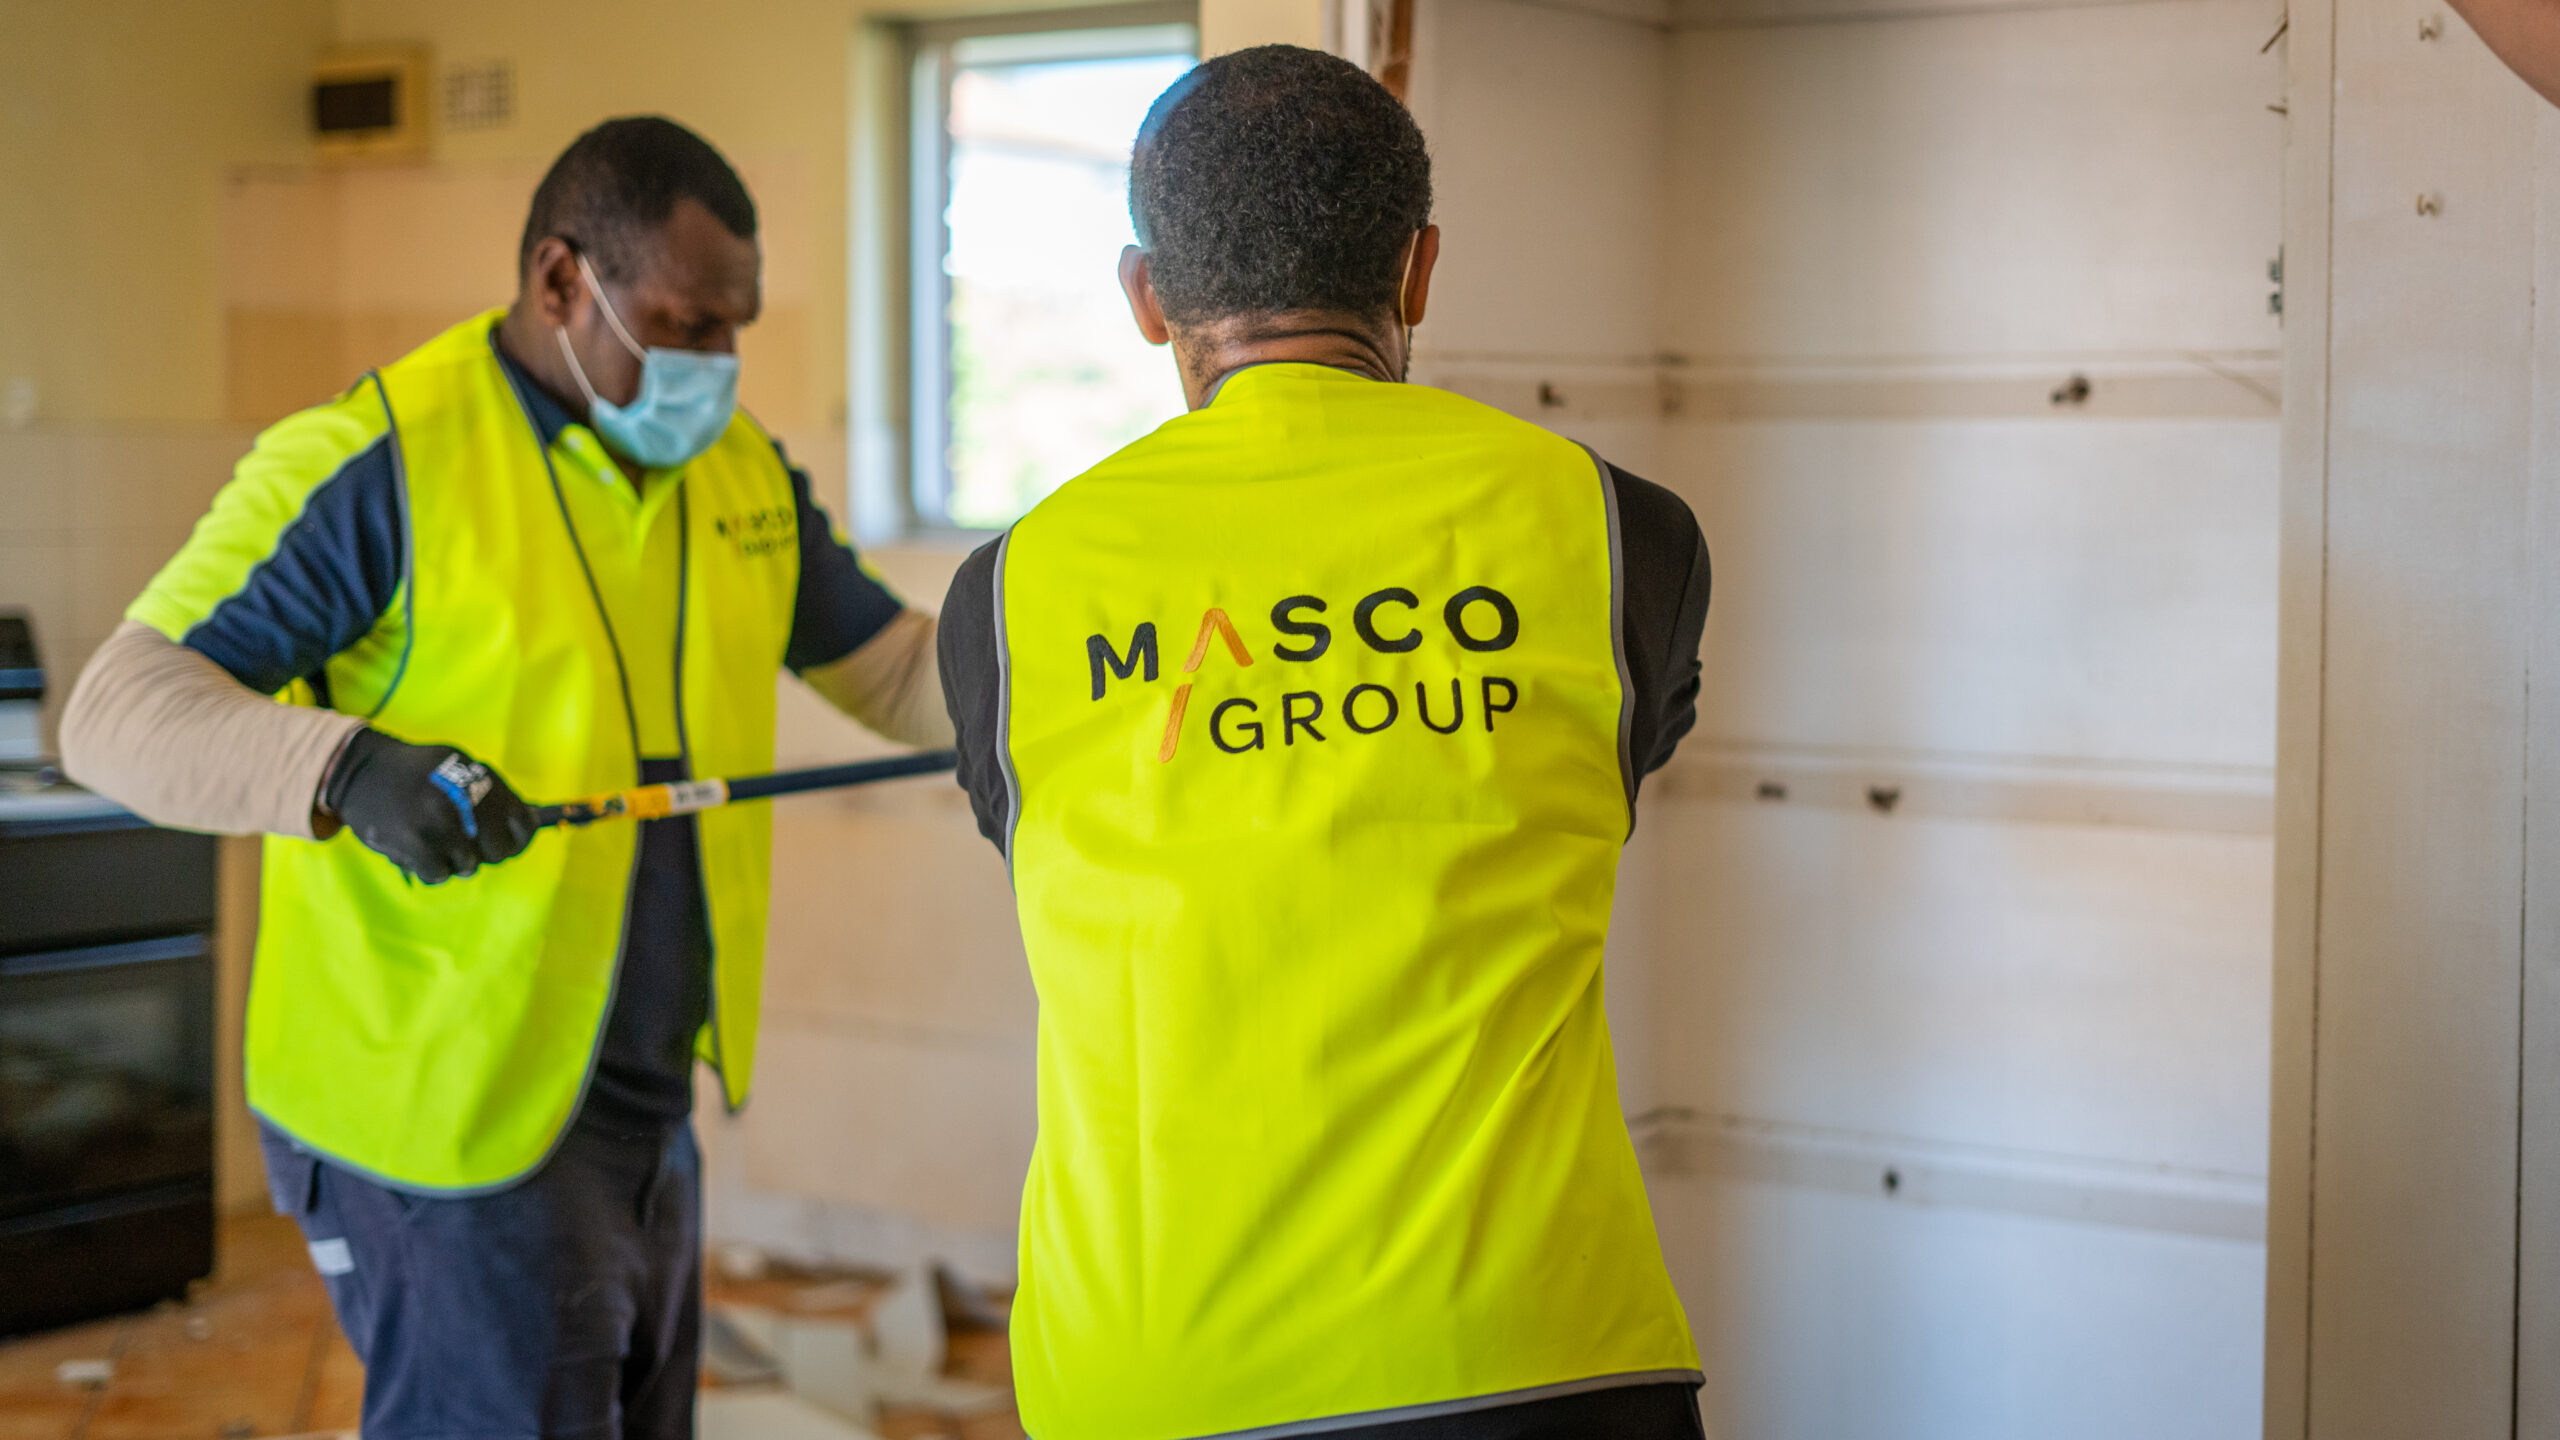 Mental Health: An Overlooked Issue In The Construction Industry